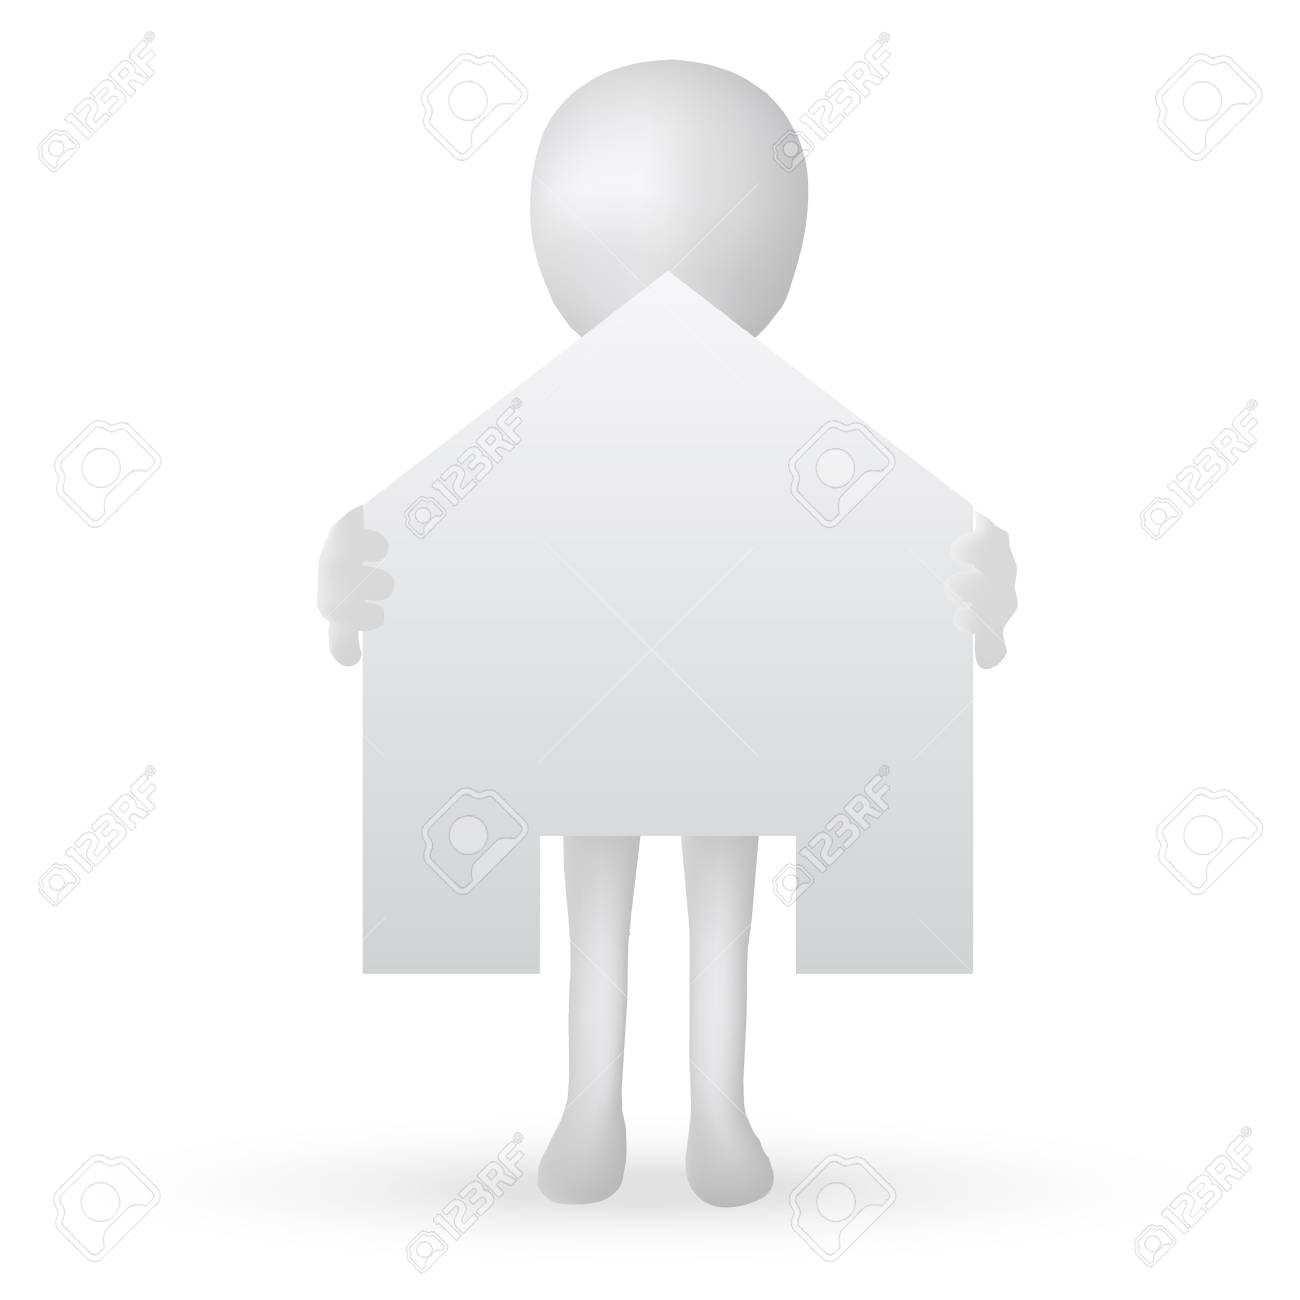 EPS Vector 10 - small 3d man hands holding a house Stock Vector - 18586641